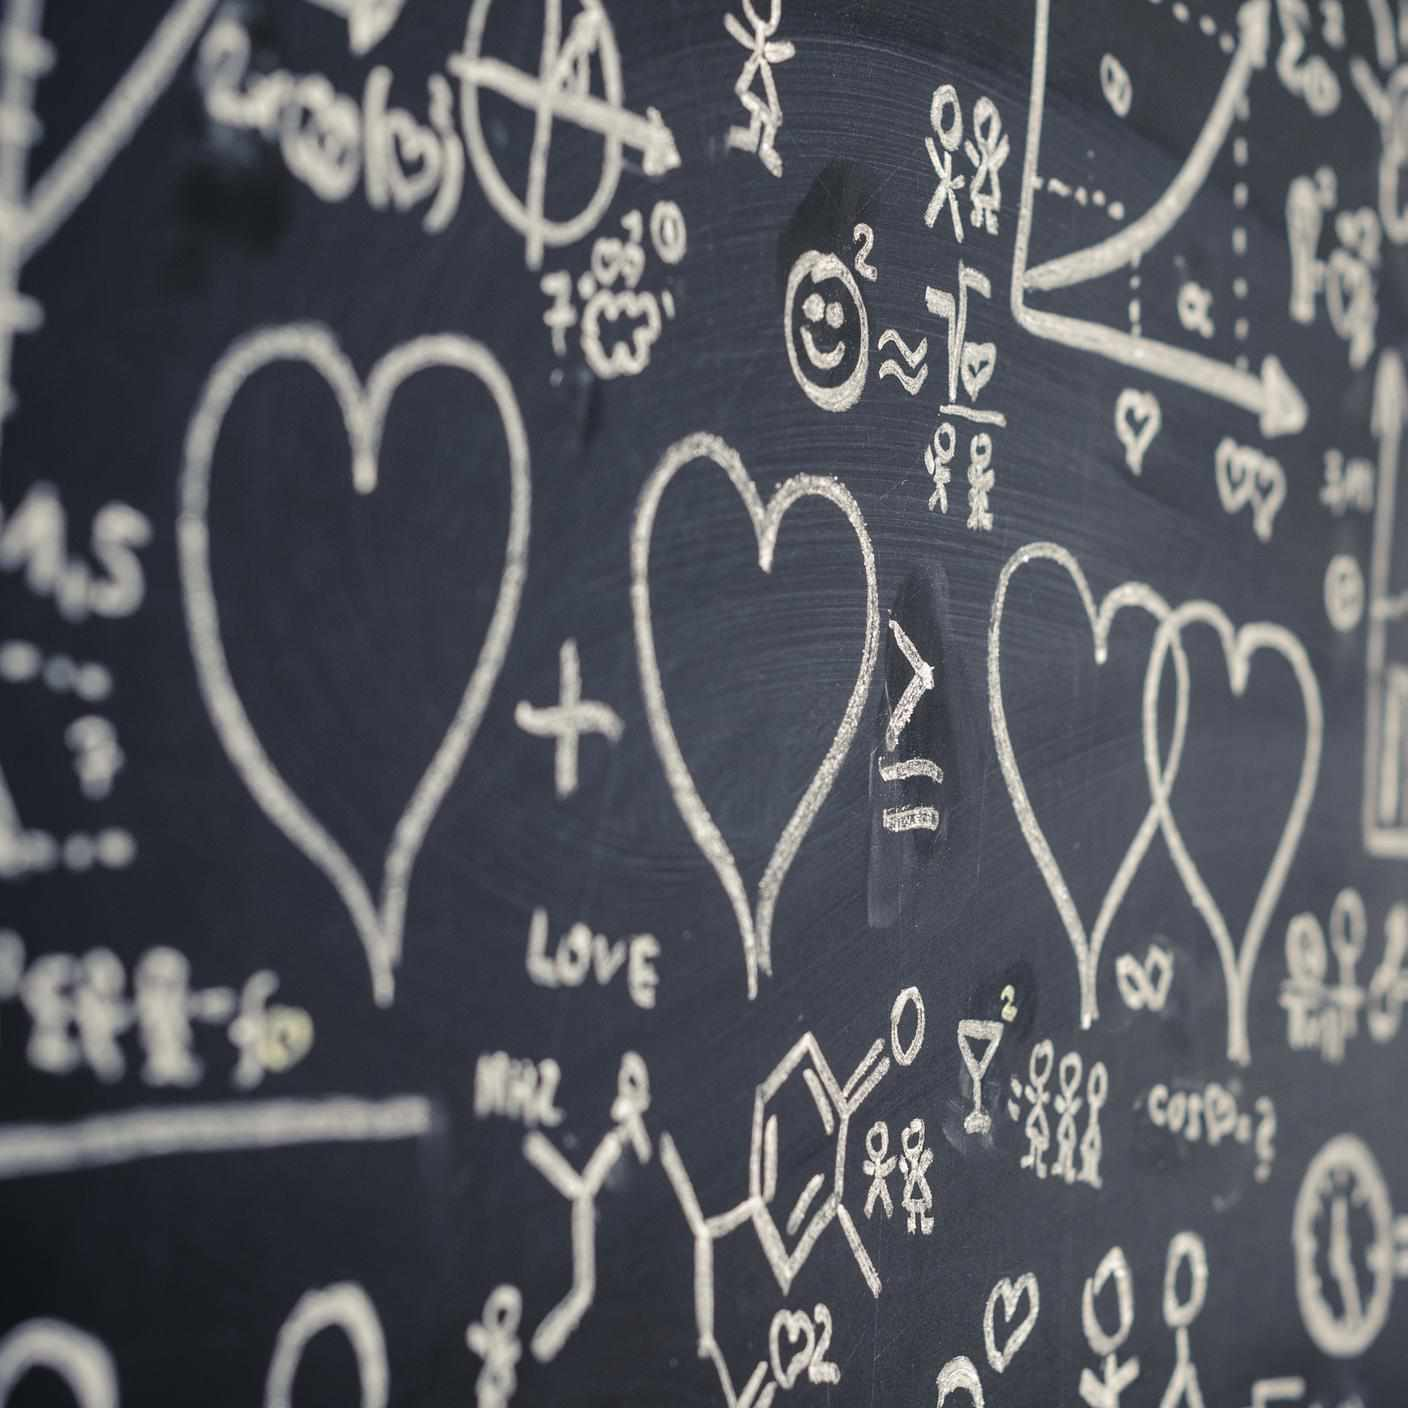 Mathematicians Plan on Making Wedding Guests Solve Math Equations to Find Their Seats